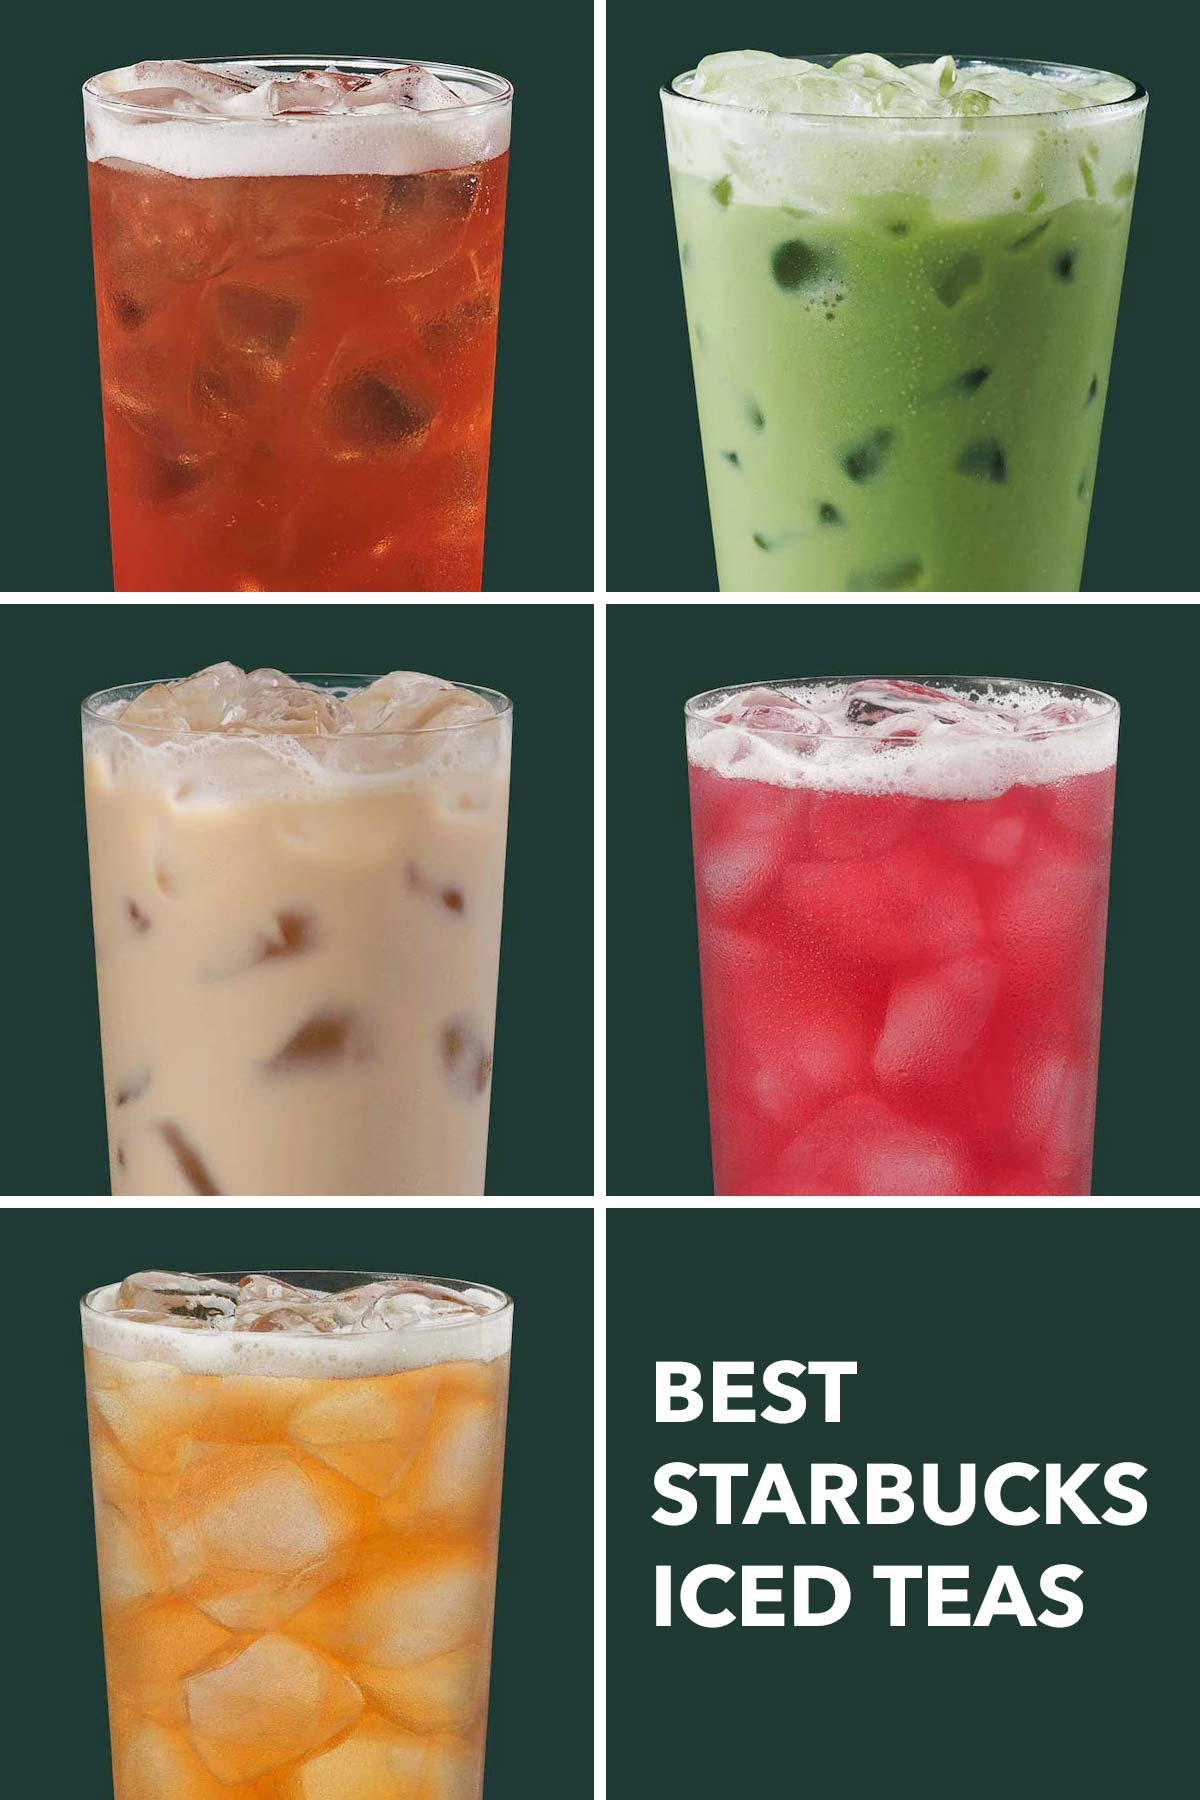 Six photo grid showing five different Starbucks iced teas.